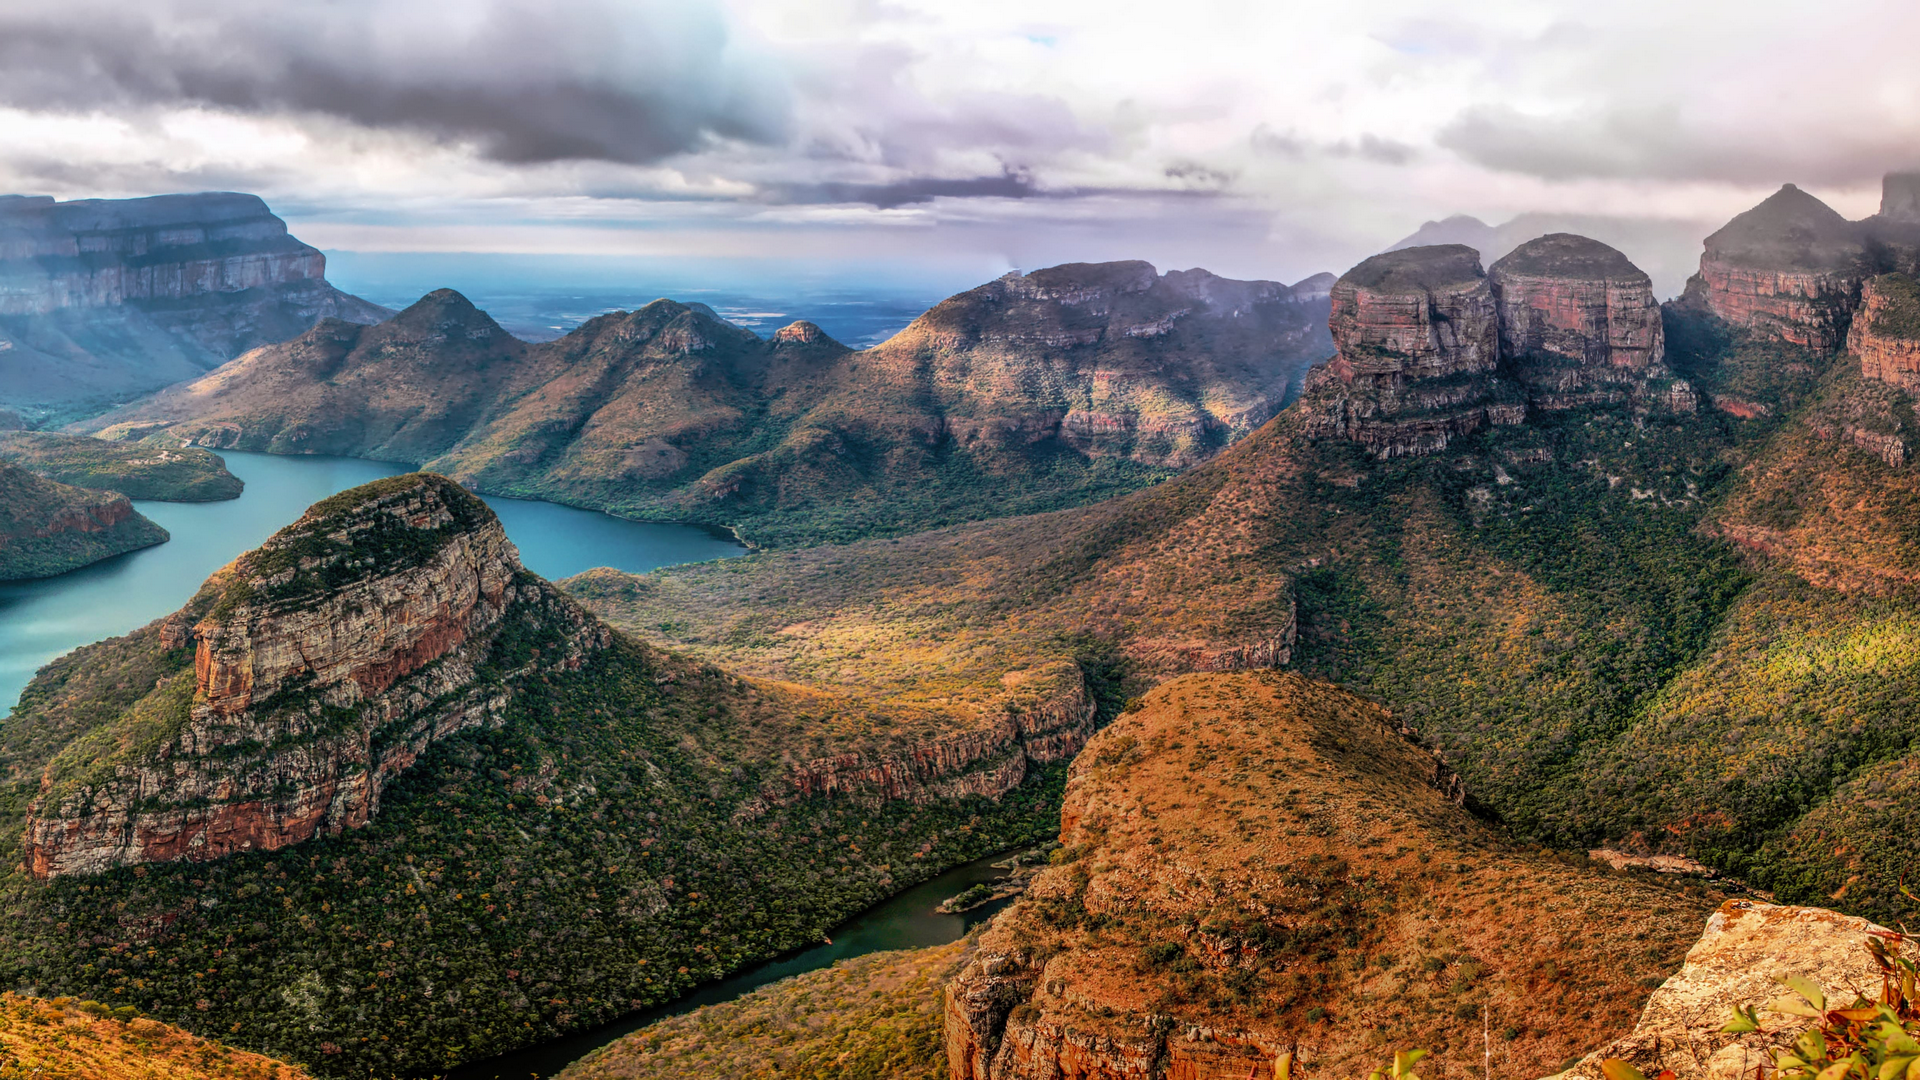 A view in South Africa